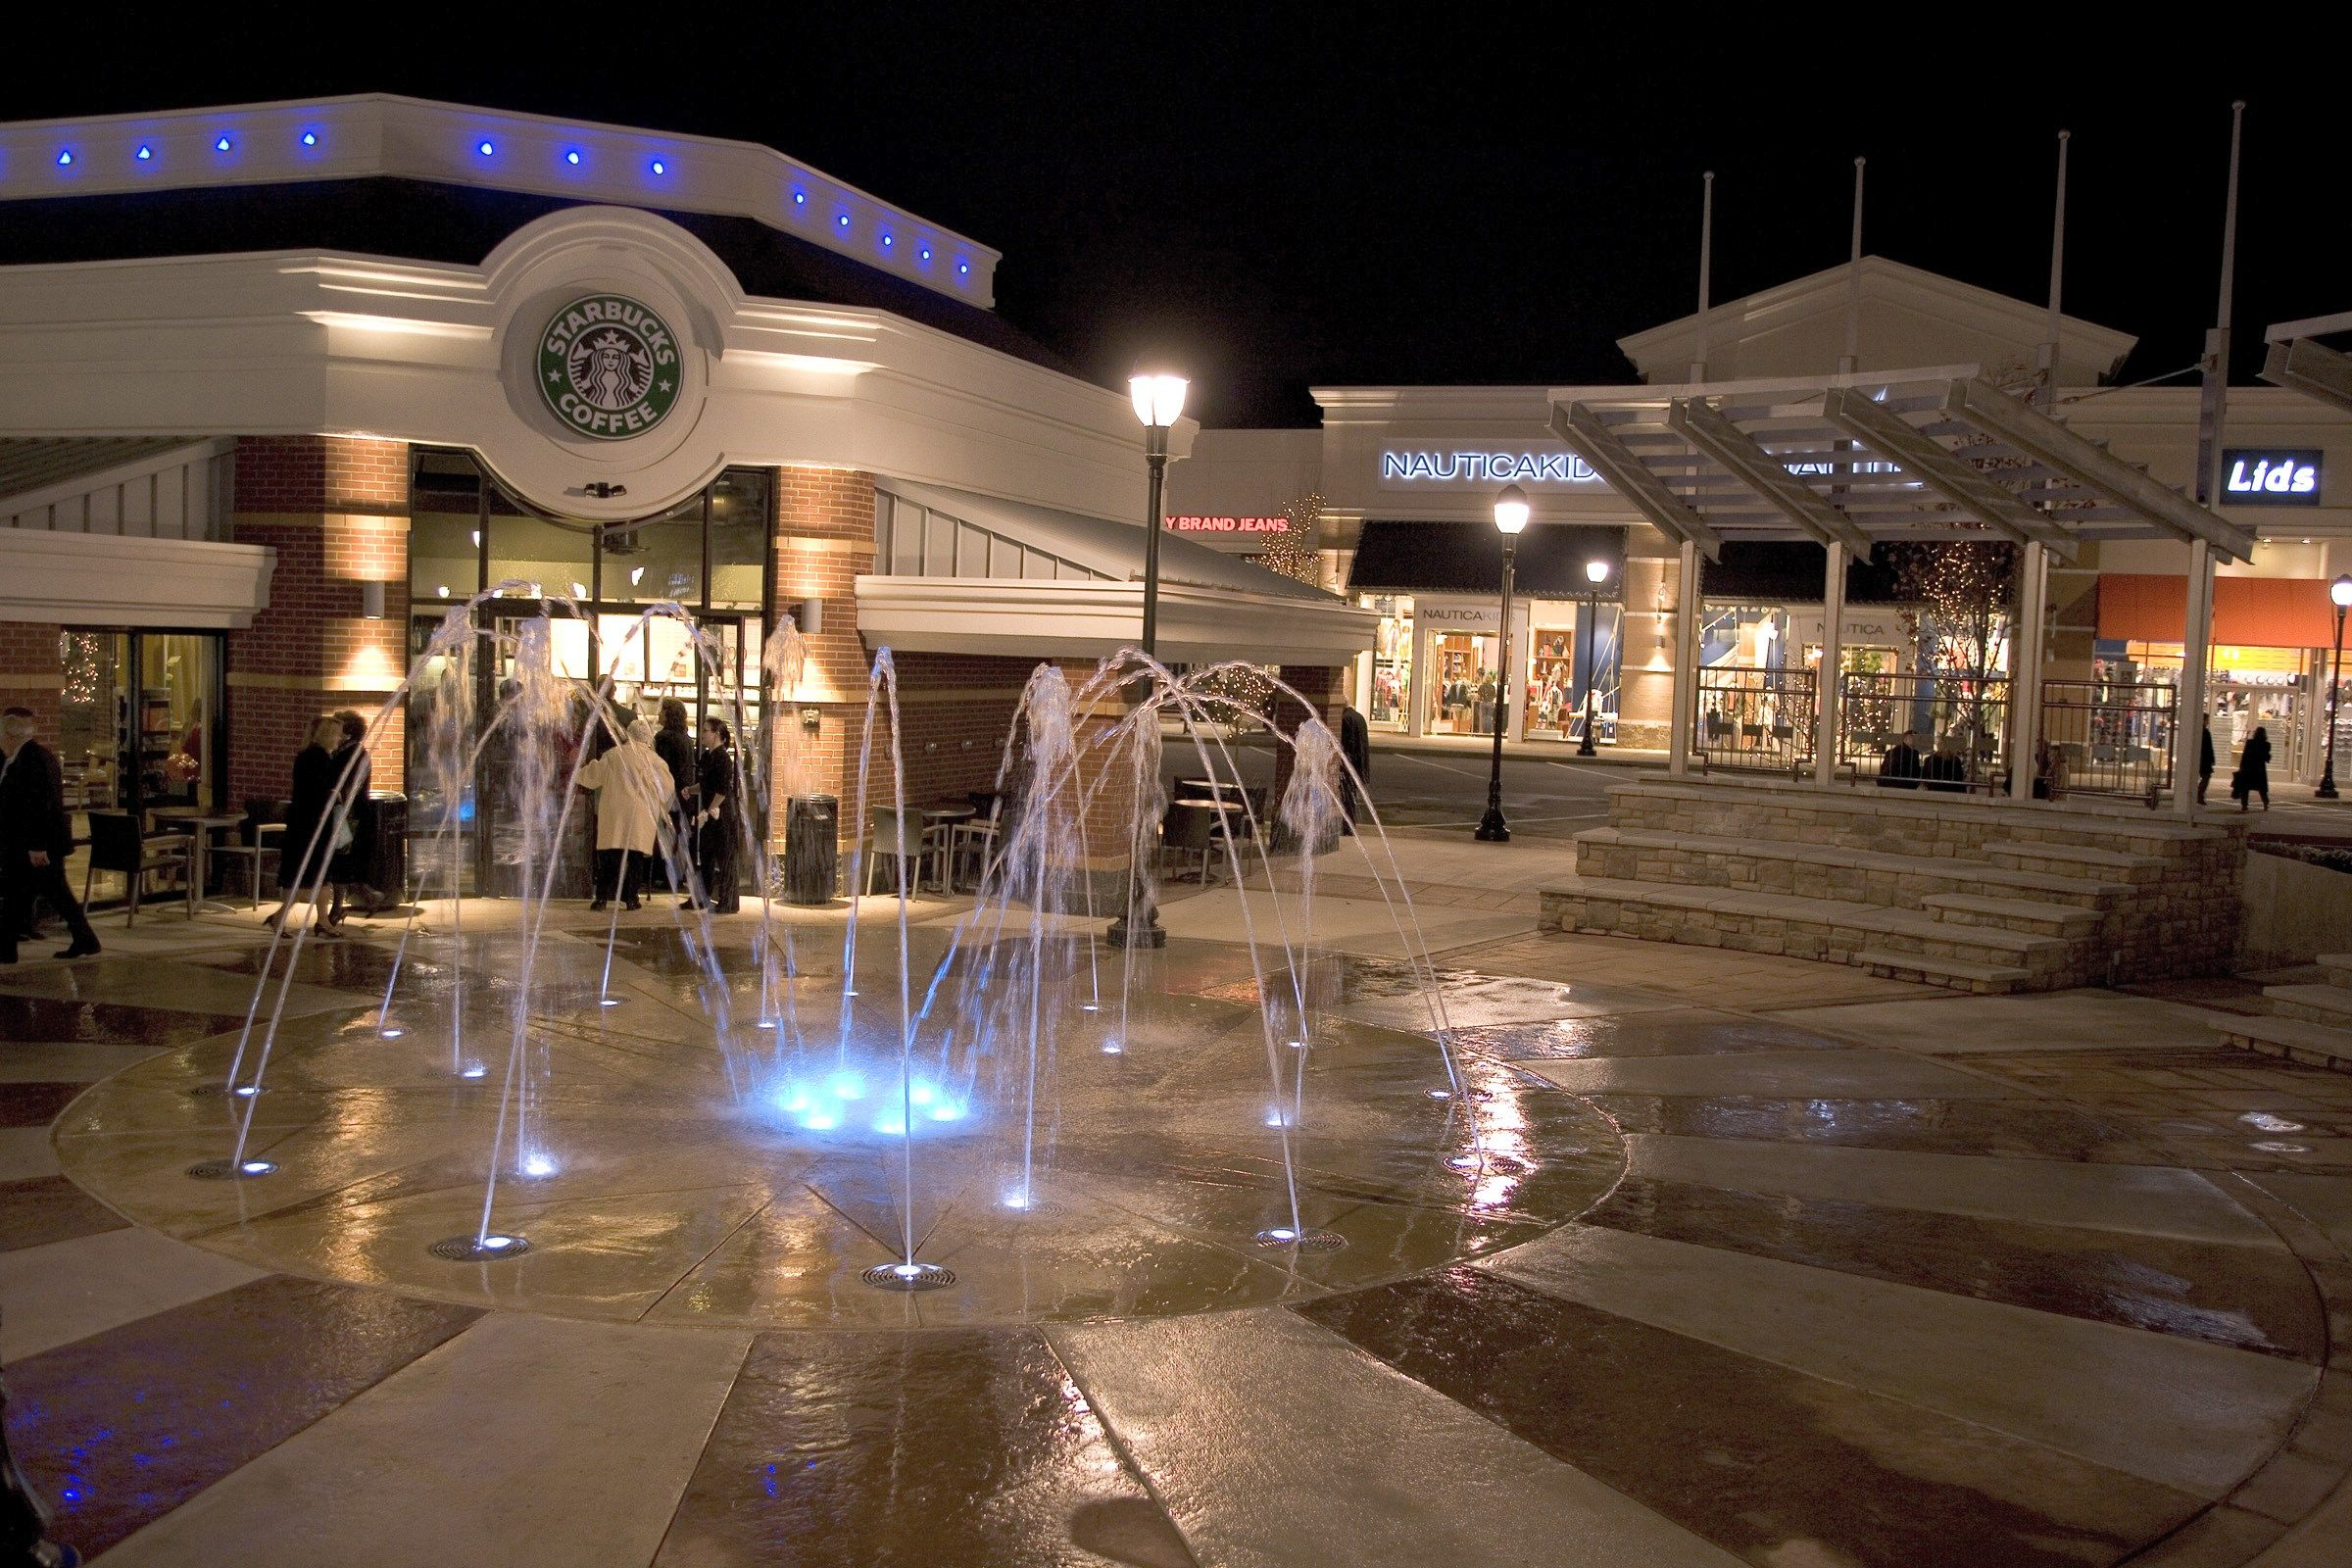 If you like to shop and you love outdoor malls this is a great place ...